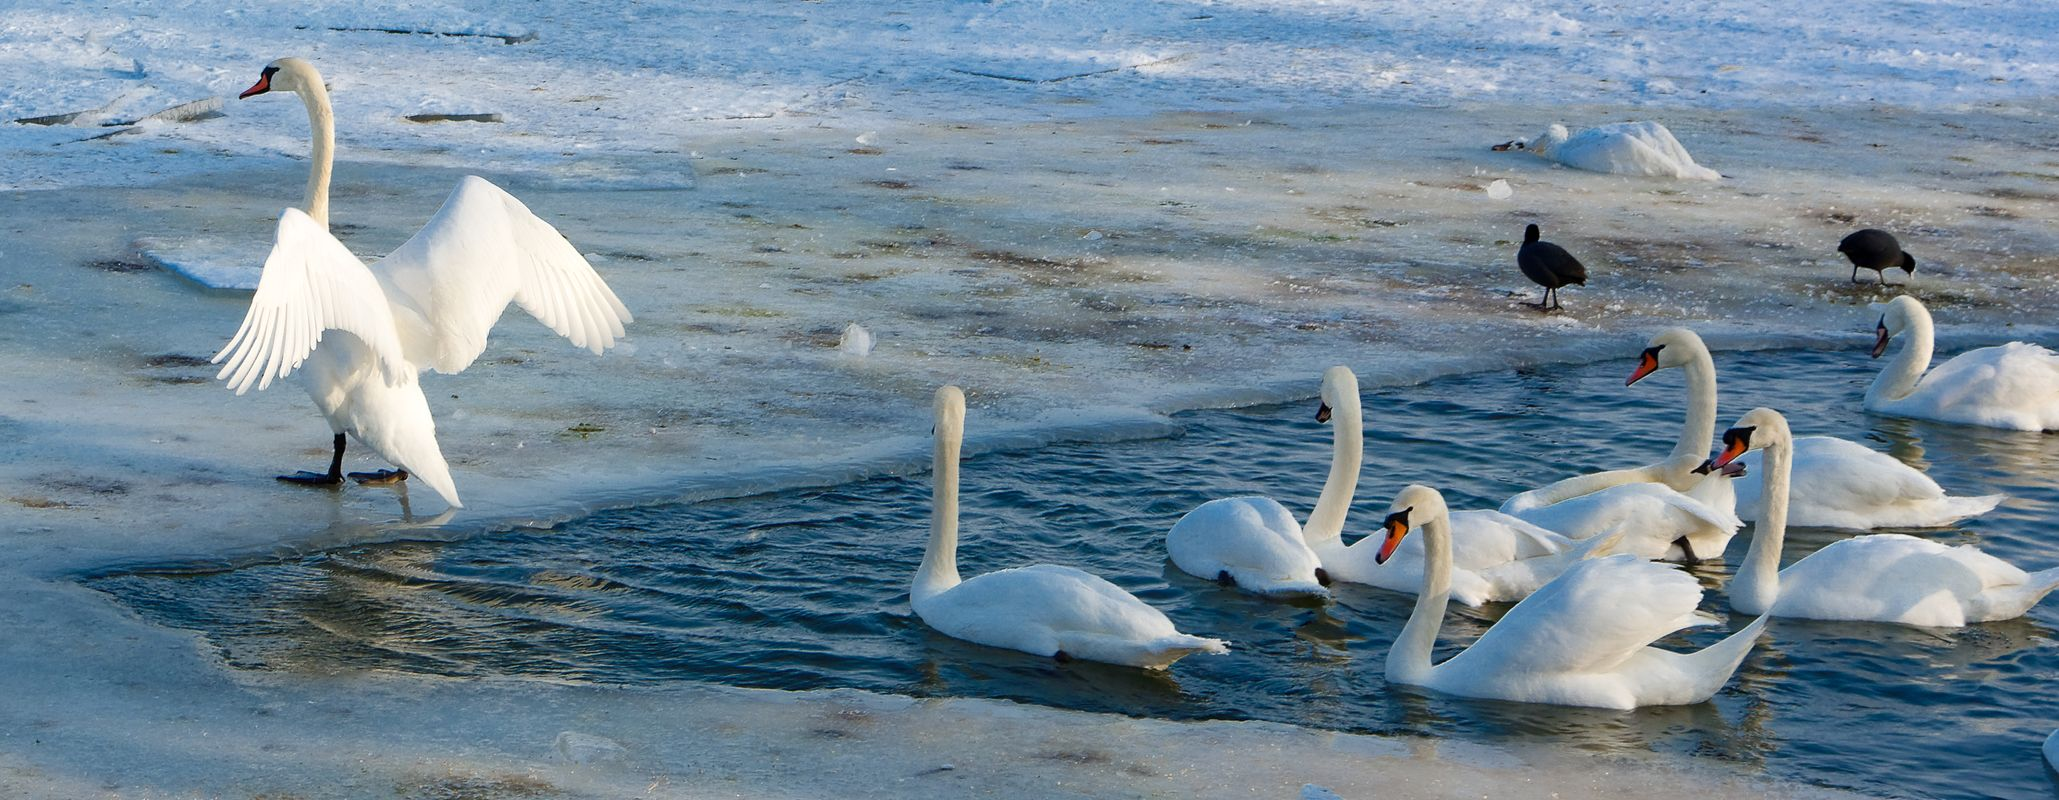 Swans on a frozen river